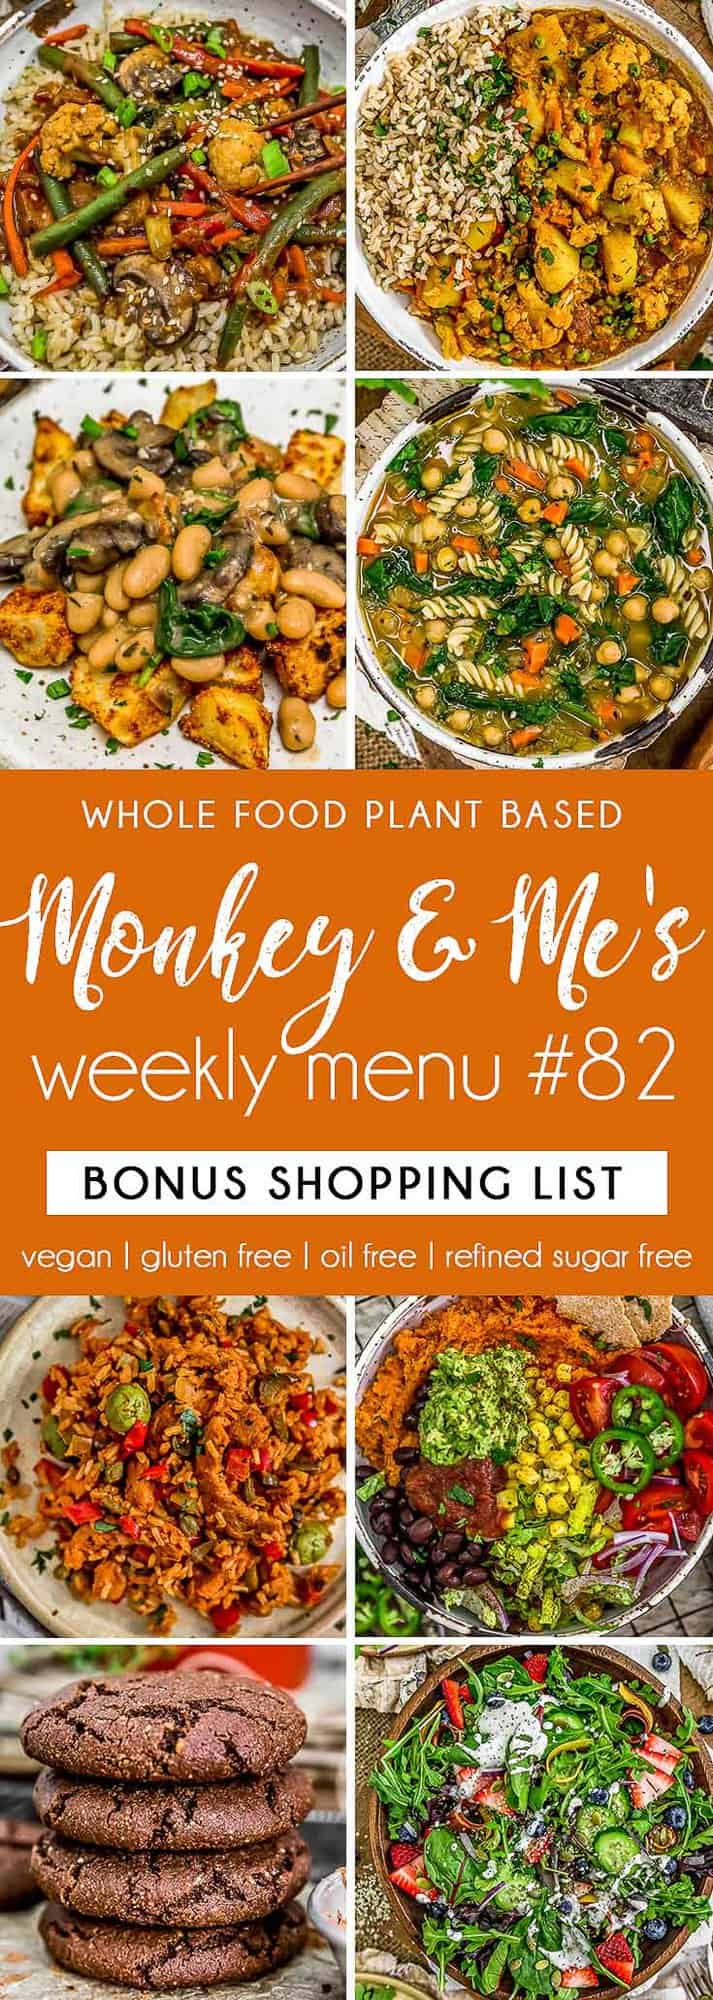 Monkey and Me's Menu 82 featuring 8 recipes